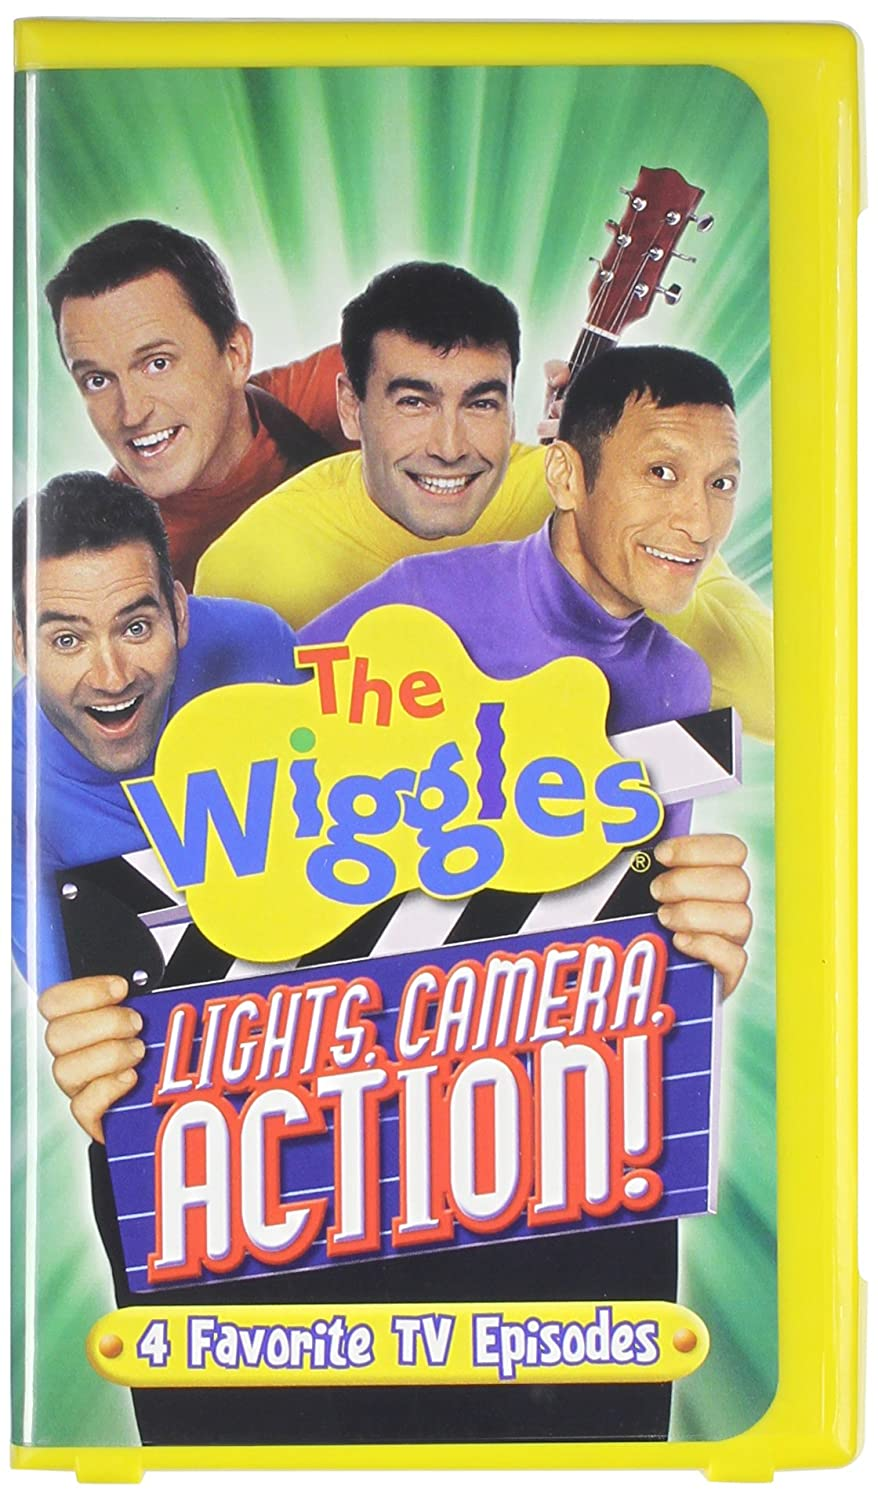 Amazon wiggleslights camera action vhs artist not amazon wiggleslights camera action vhs artist not provided movies tv sciox Choice Image